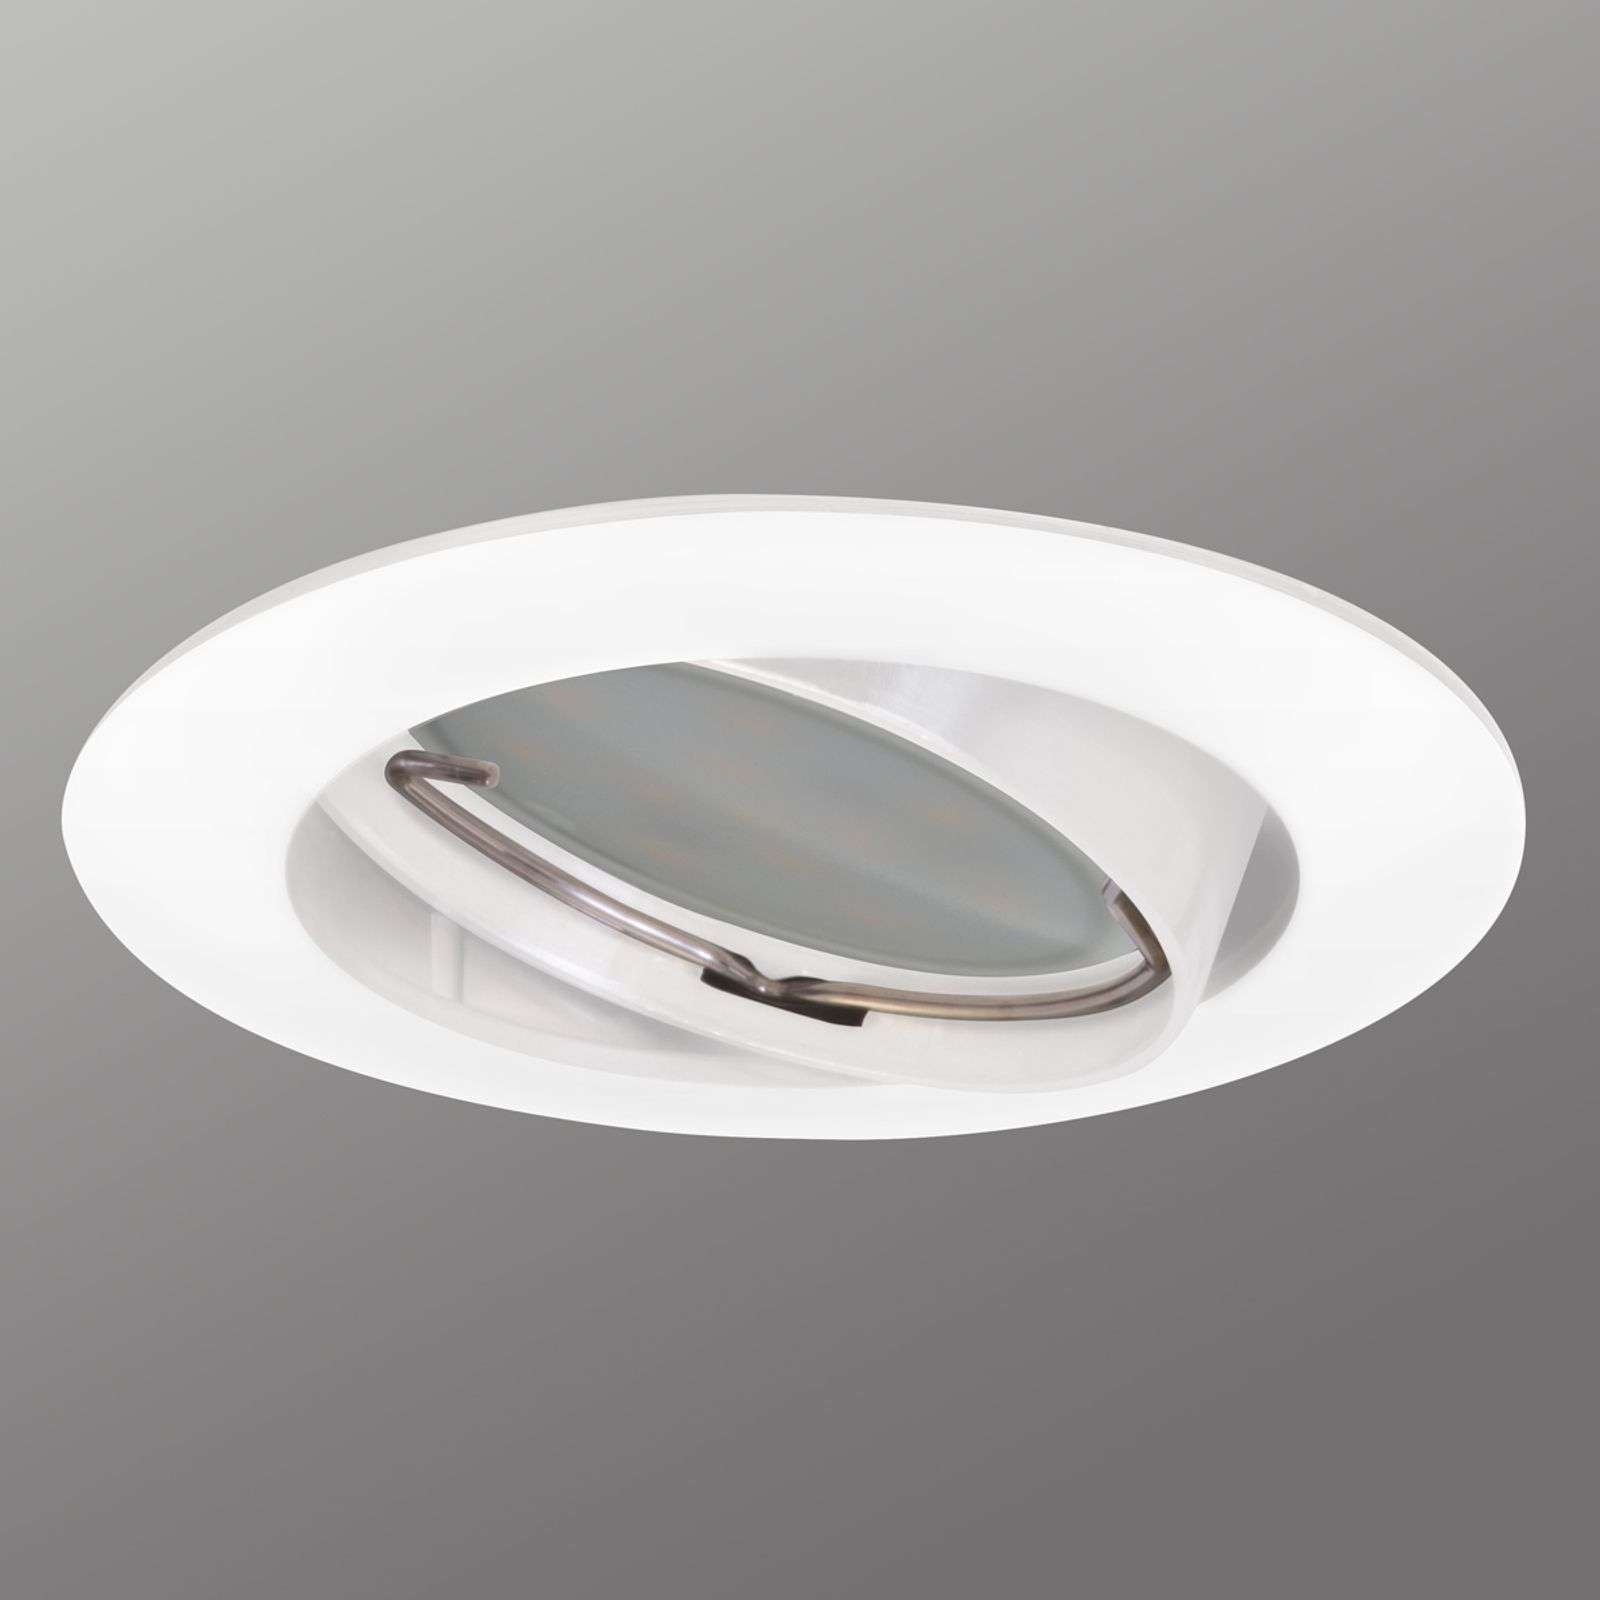 Spot encastrable Downlight DIM Flat, blanc